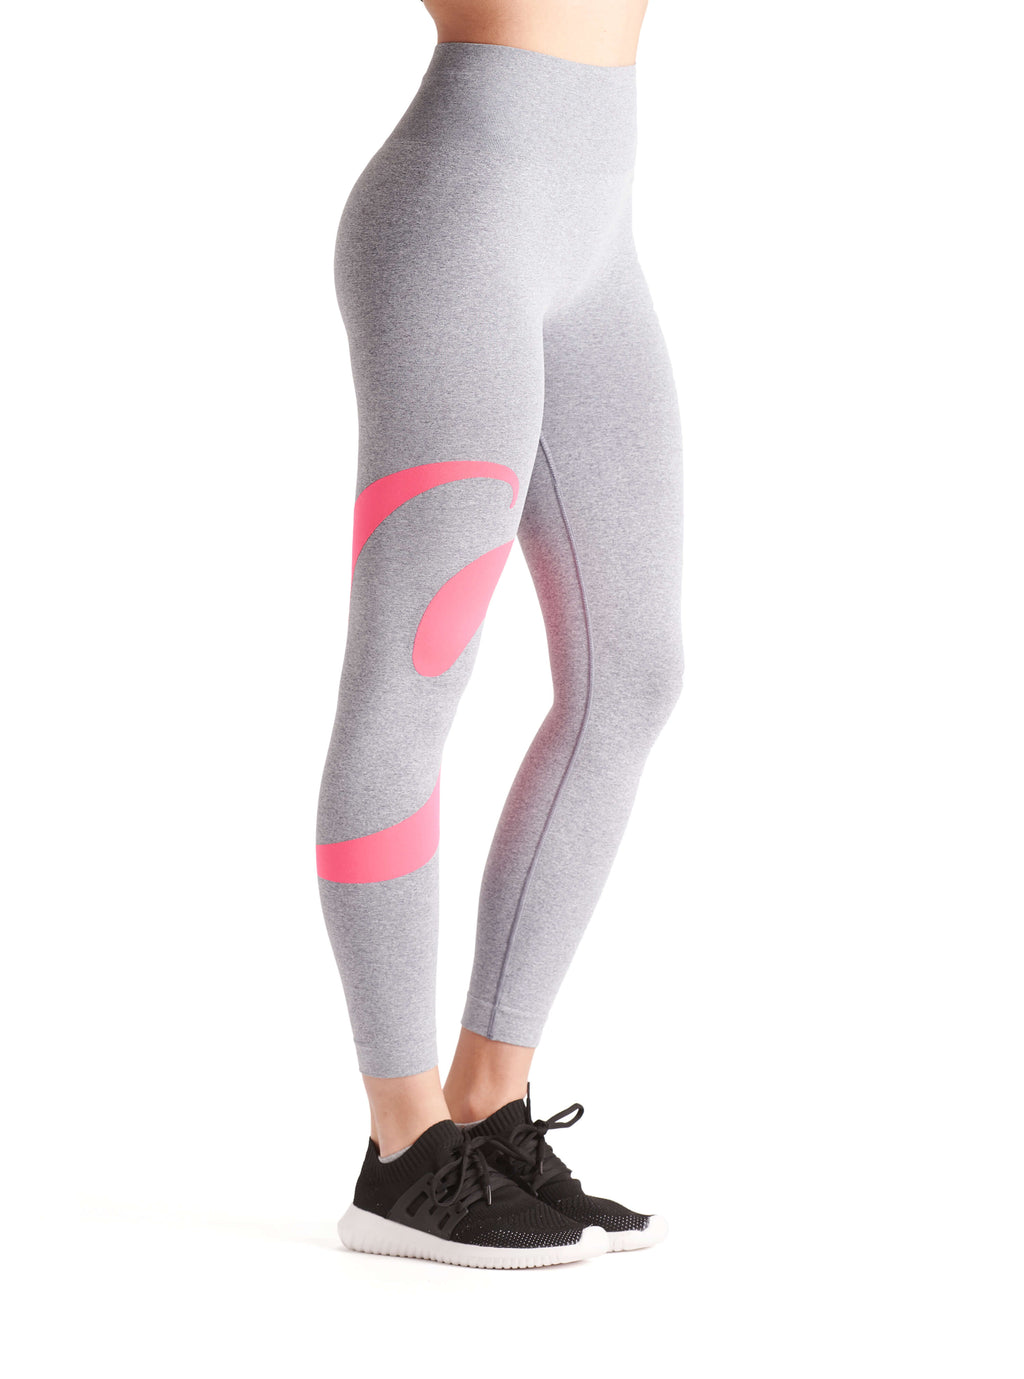 BeFit Keep It Moving Sport Leggings Grey - BeGoodNy